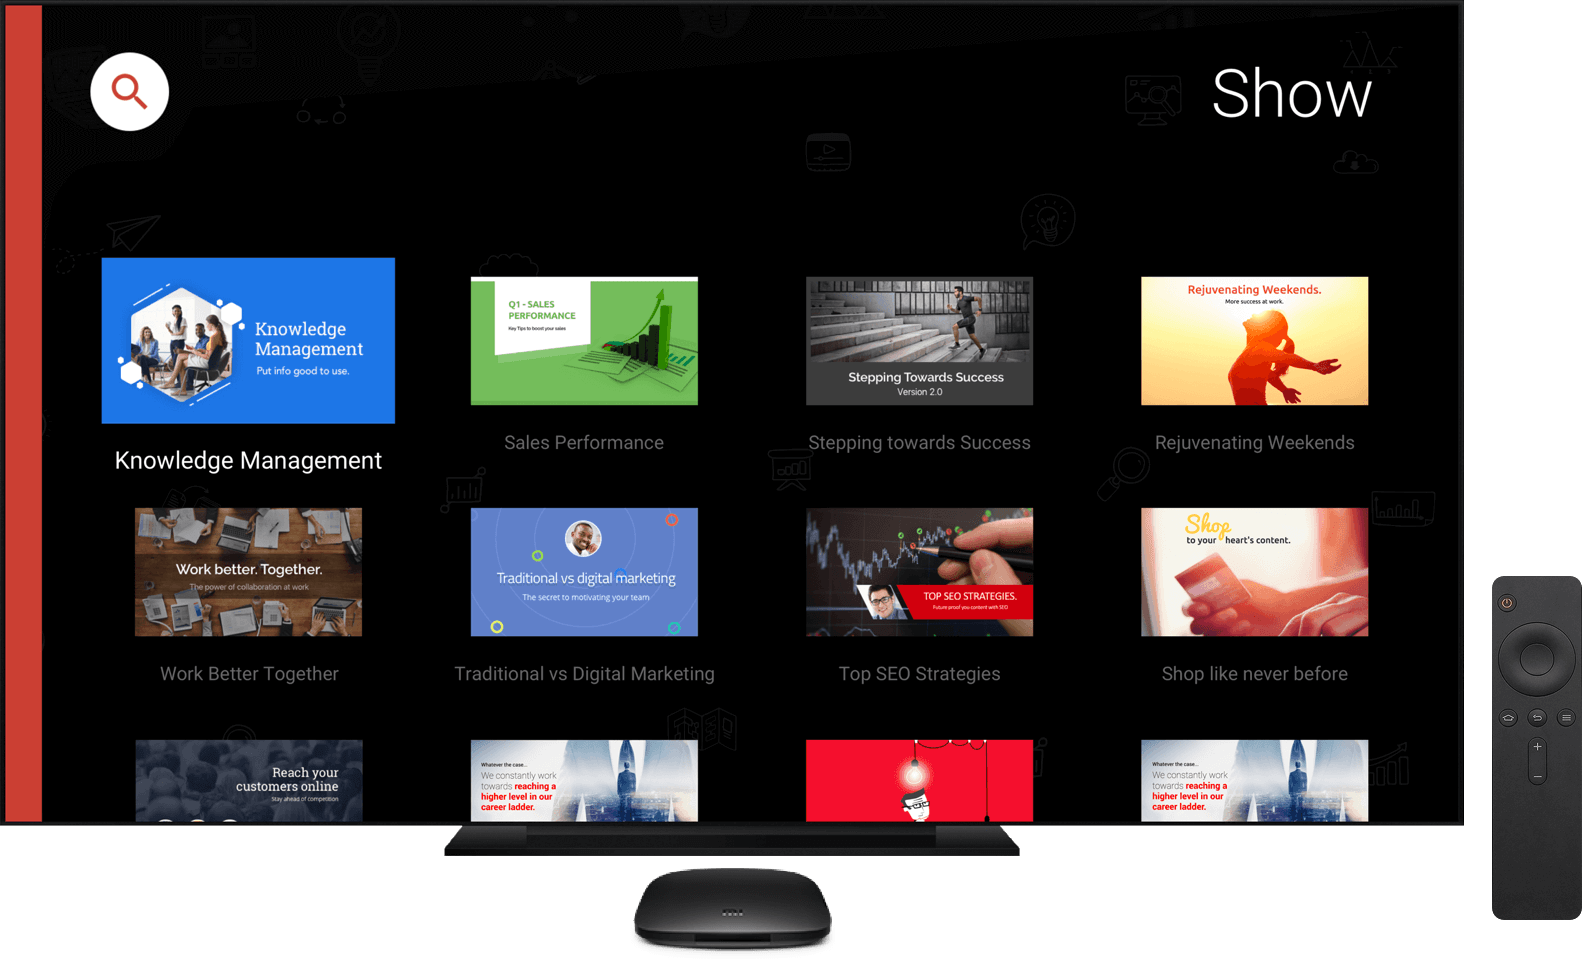 Show for Android TV